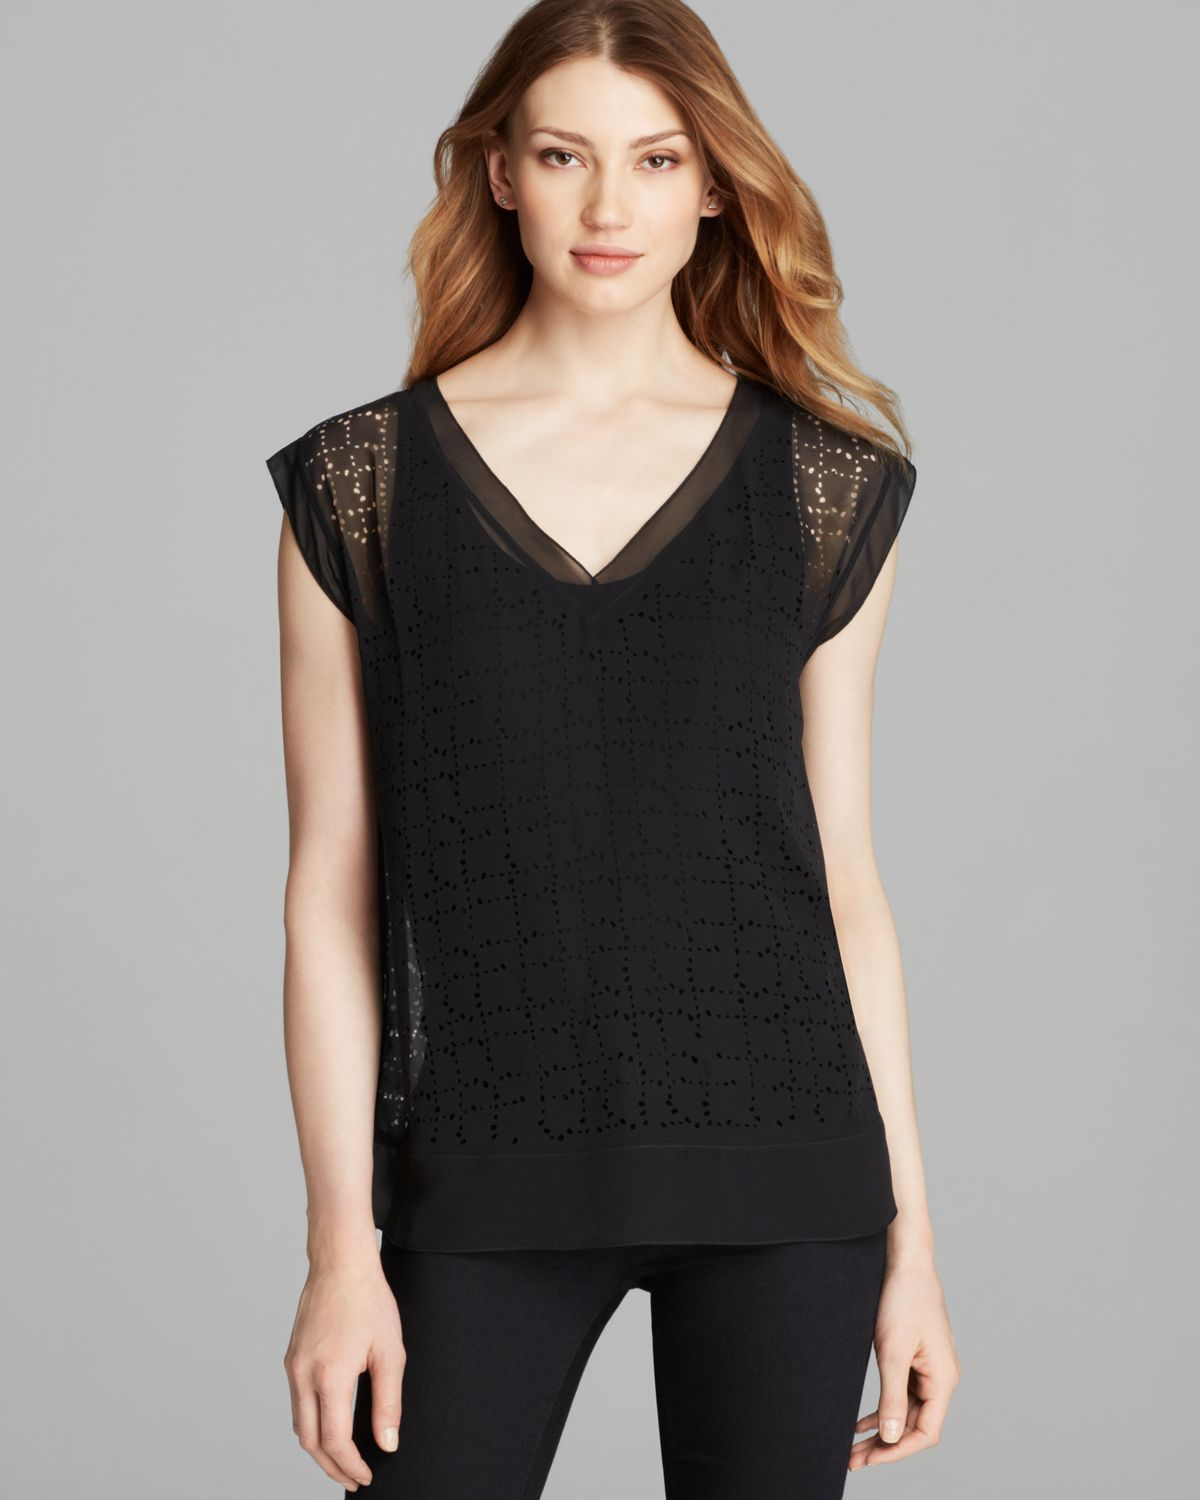 Cap Sleeve Tops –  very special touch